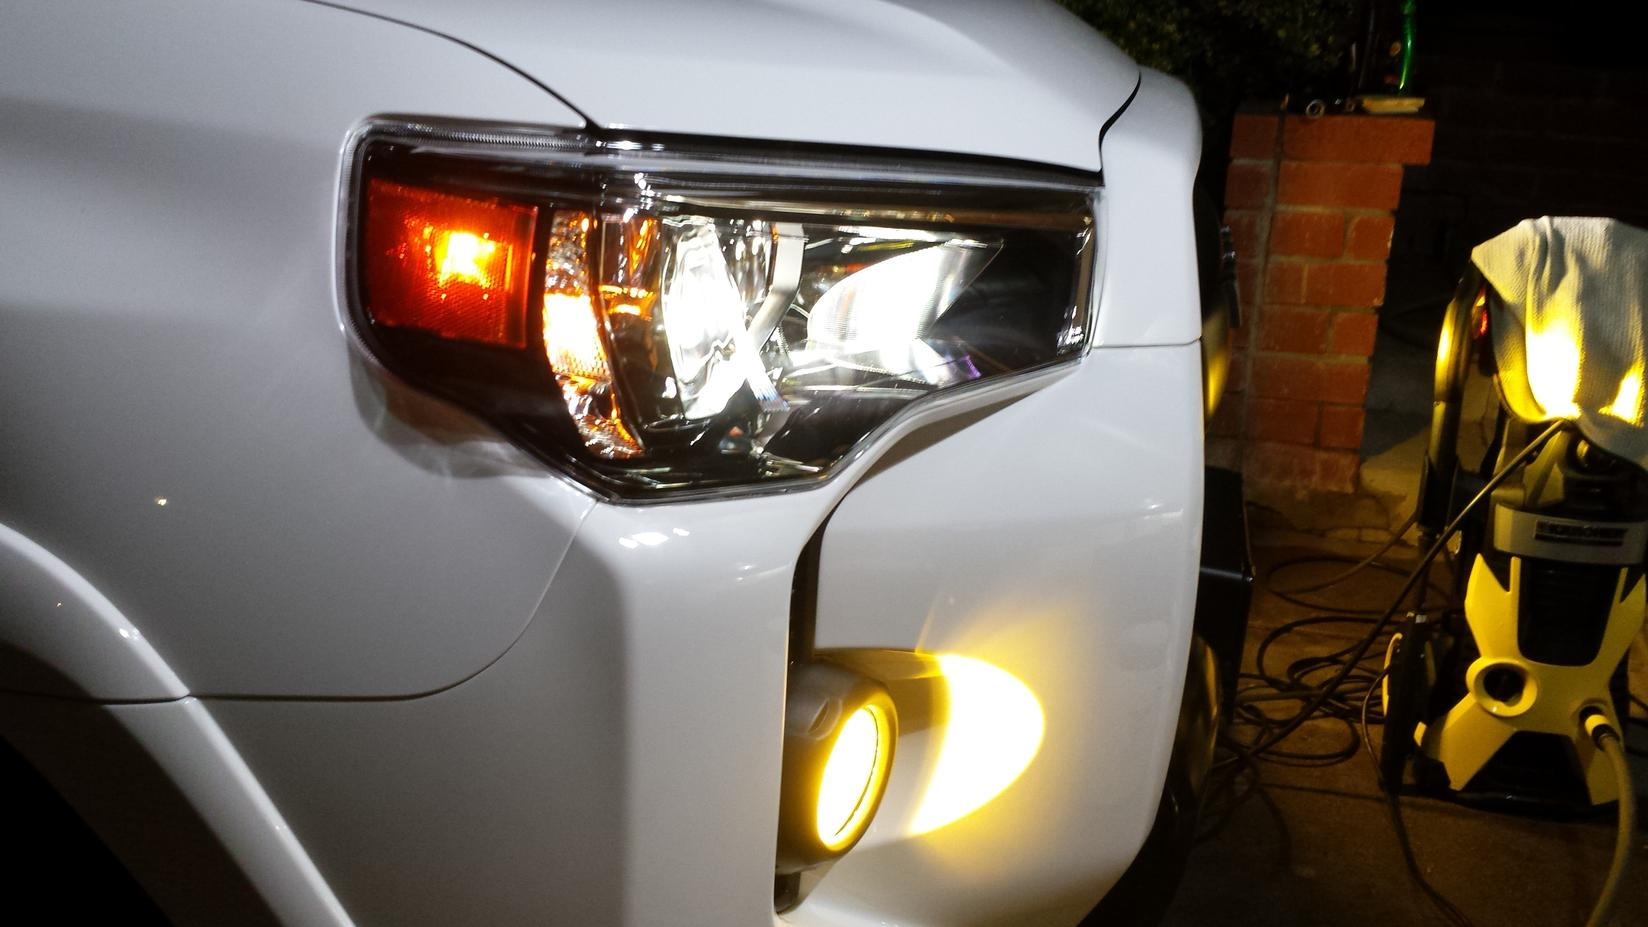 Owner S Review Of Hid Bulbs Replacement For 2014 Toyota